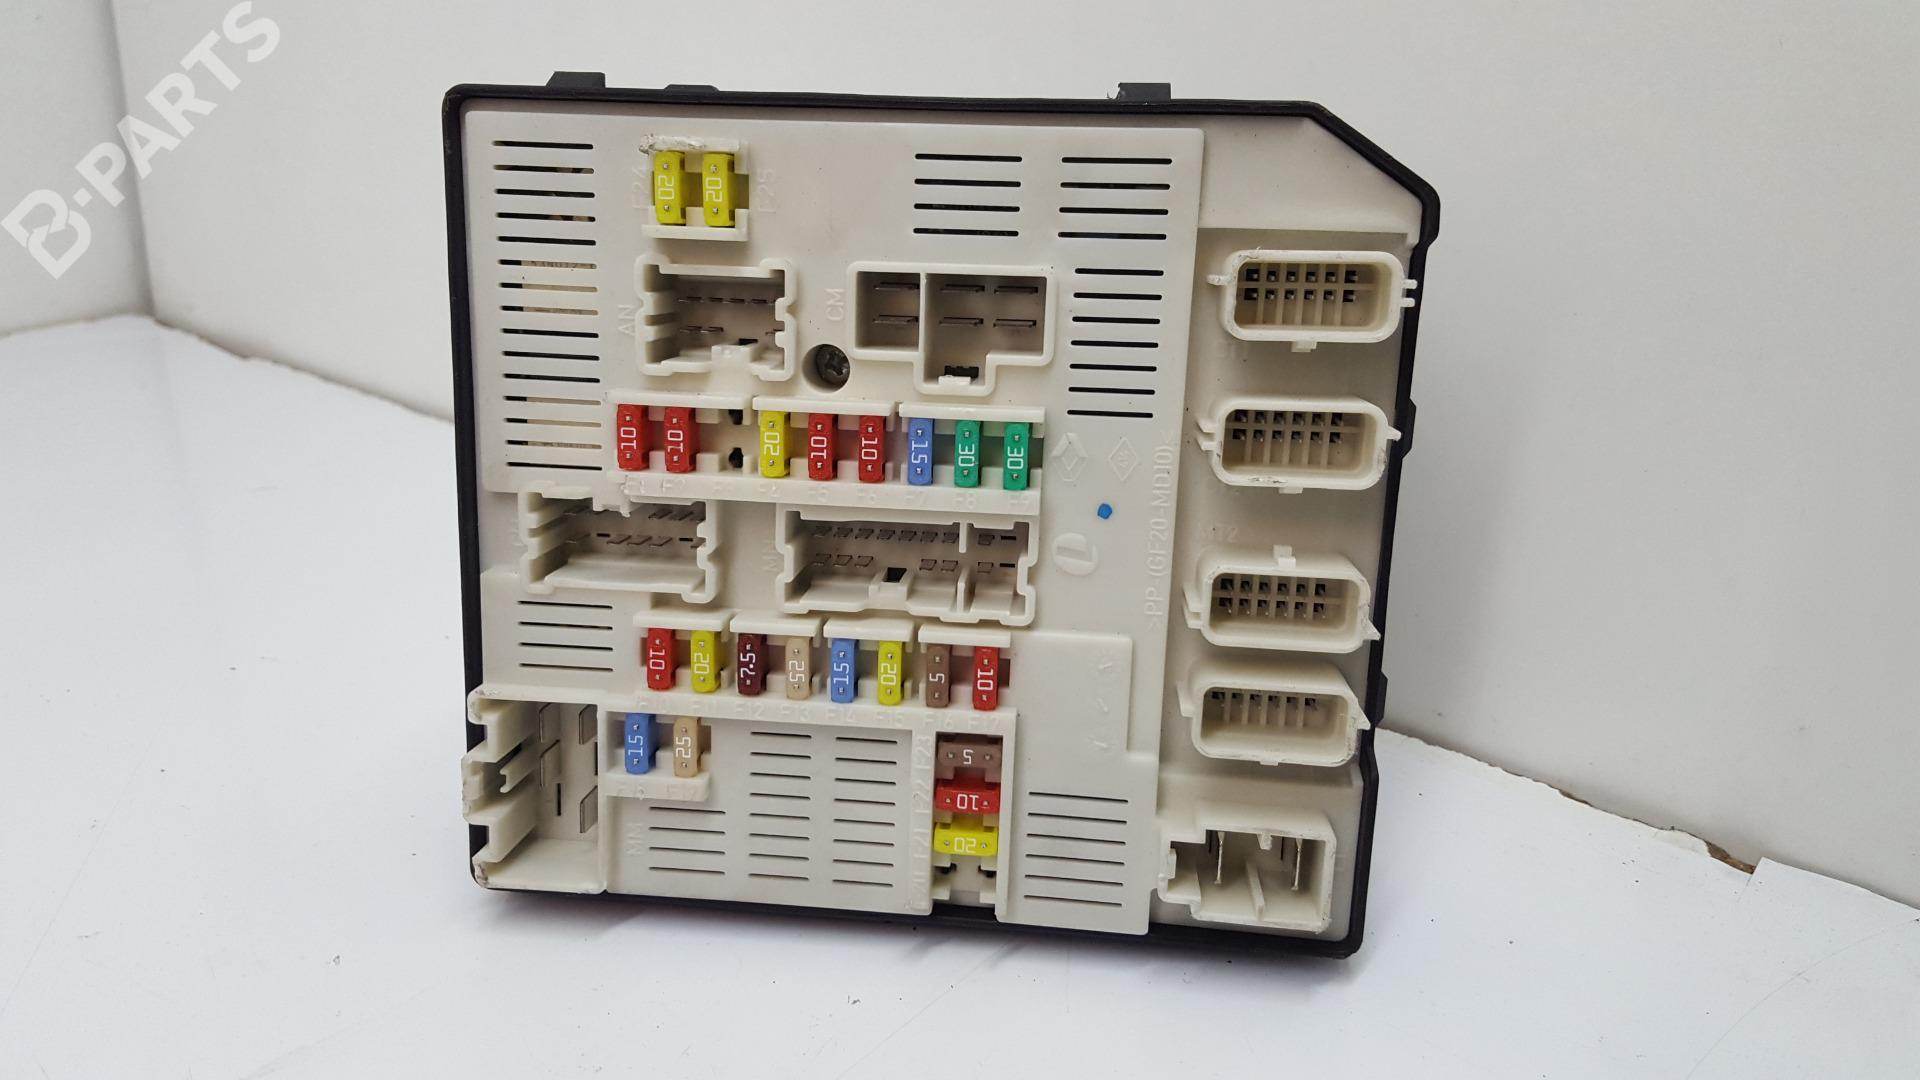 hight resolution of fuse box 284b60008r 519339311 8229349366 renault megane iii grandtour kz0 1